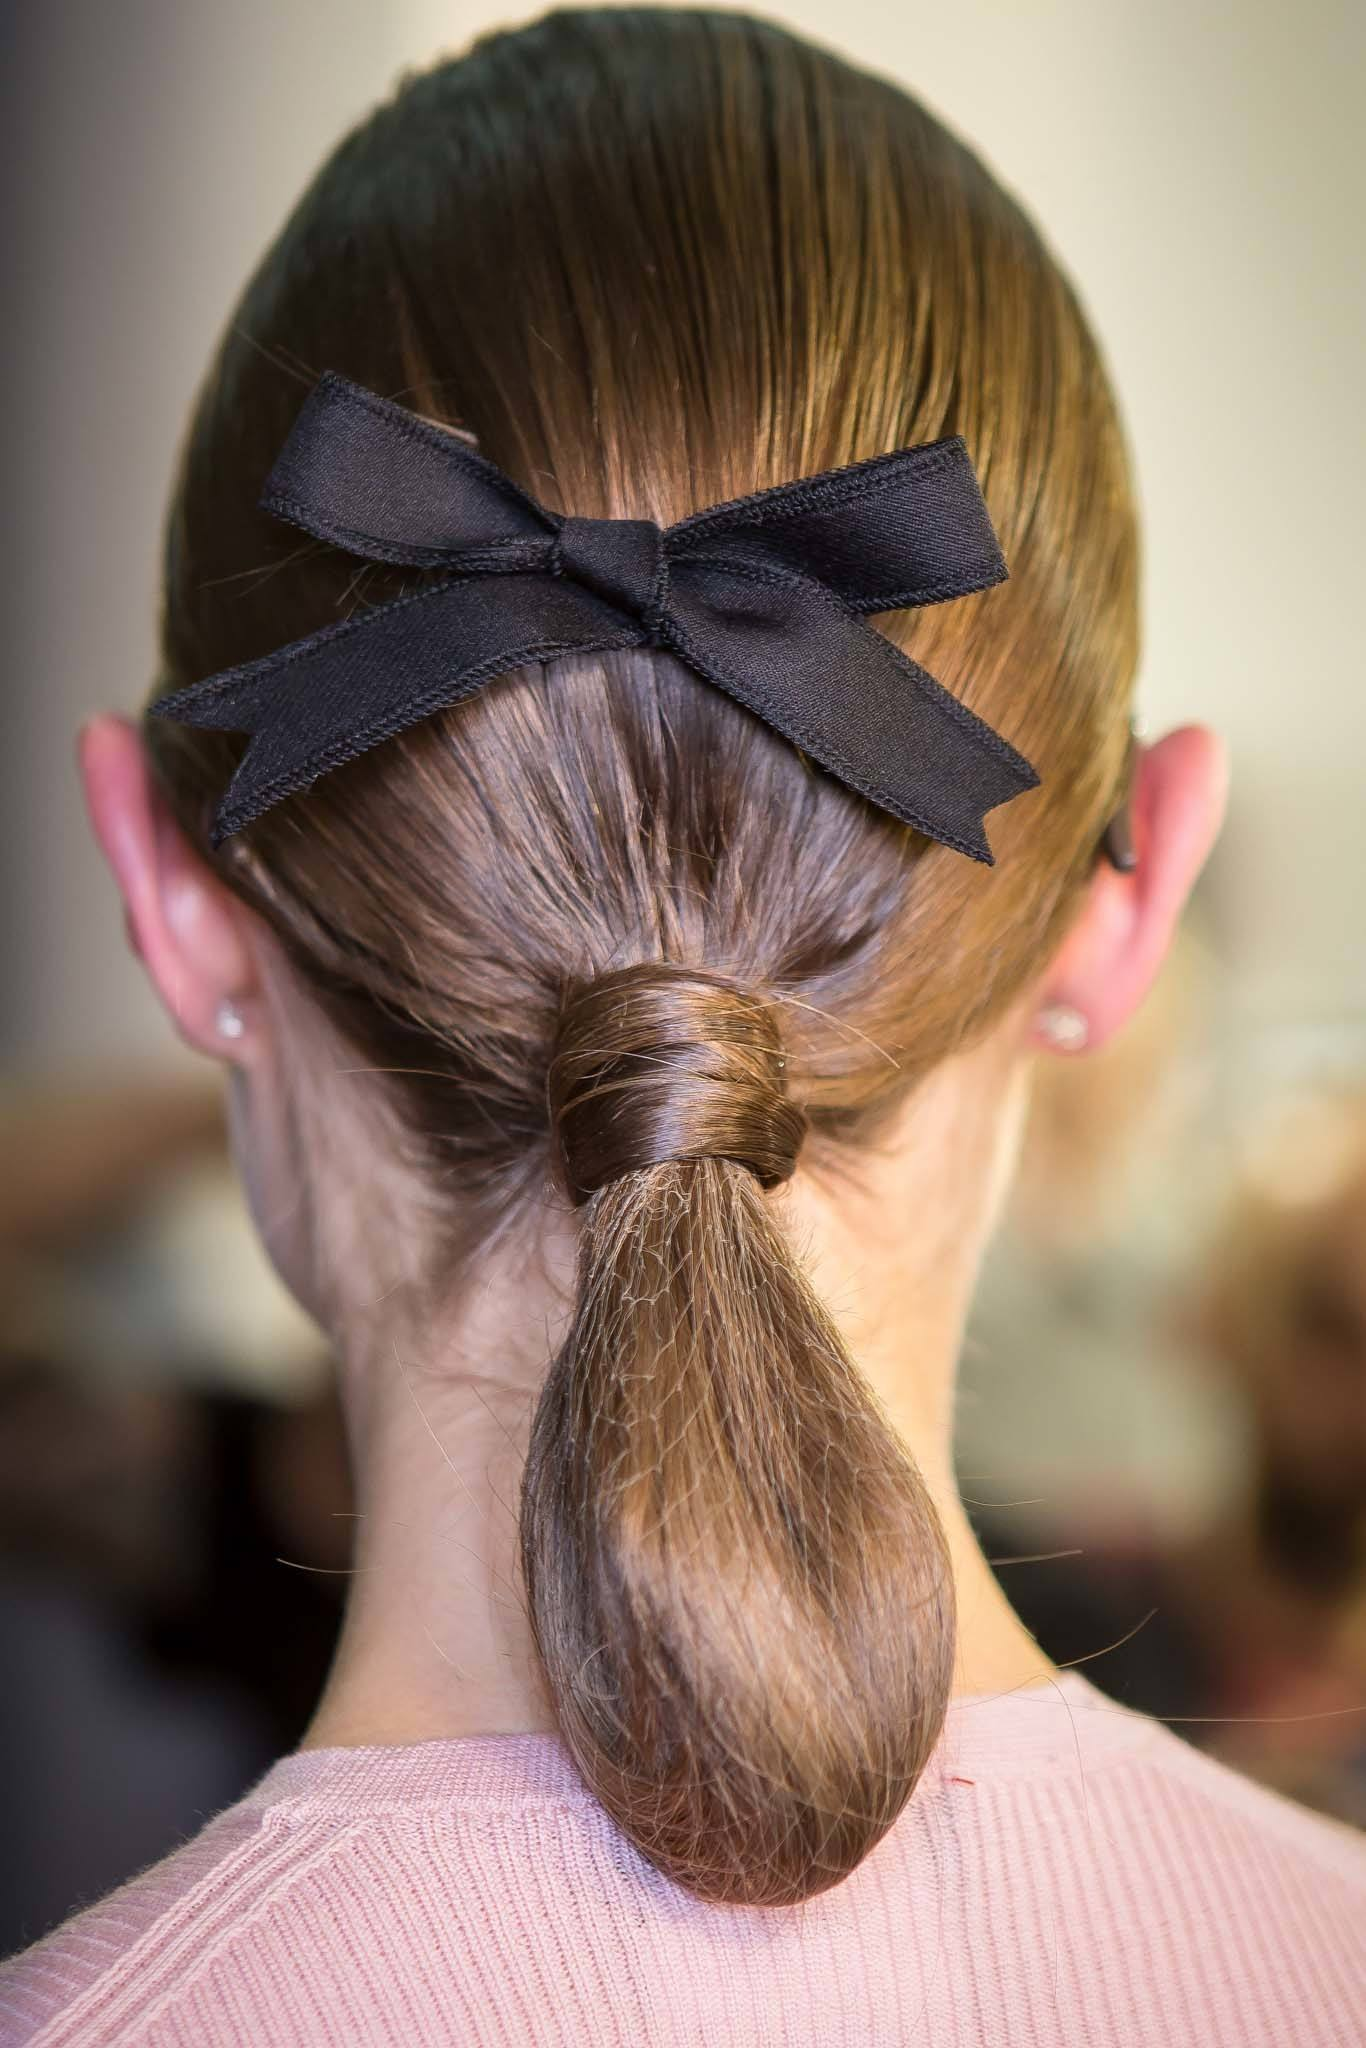 ribbon hair accessory trend with a hair net